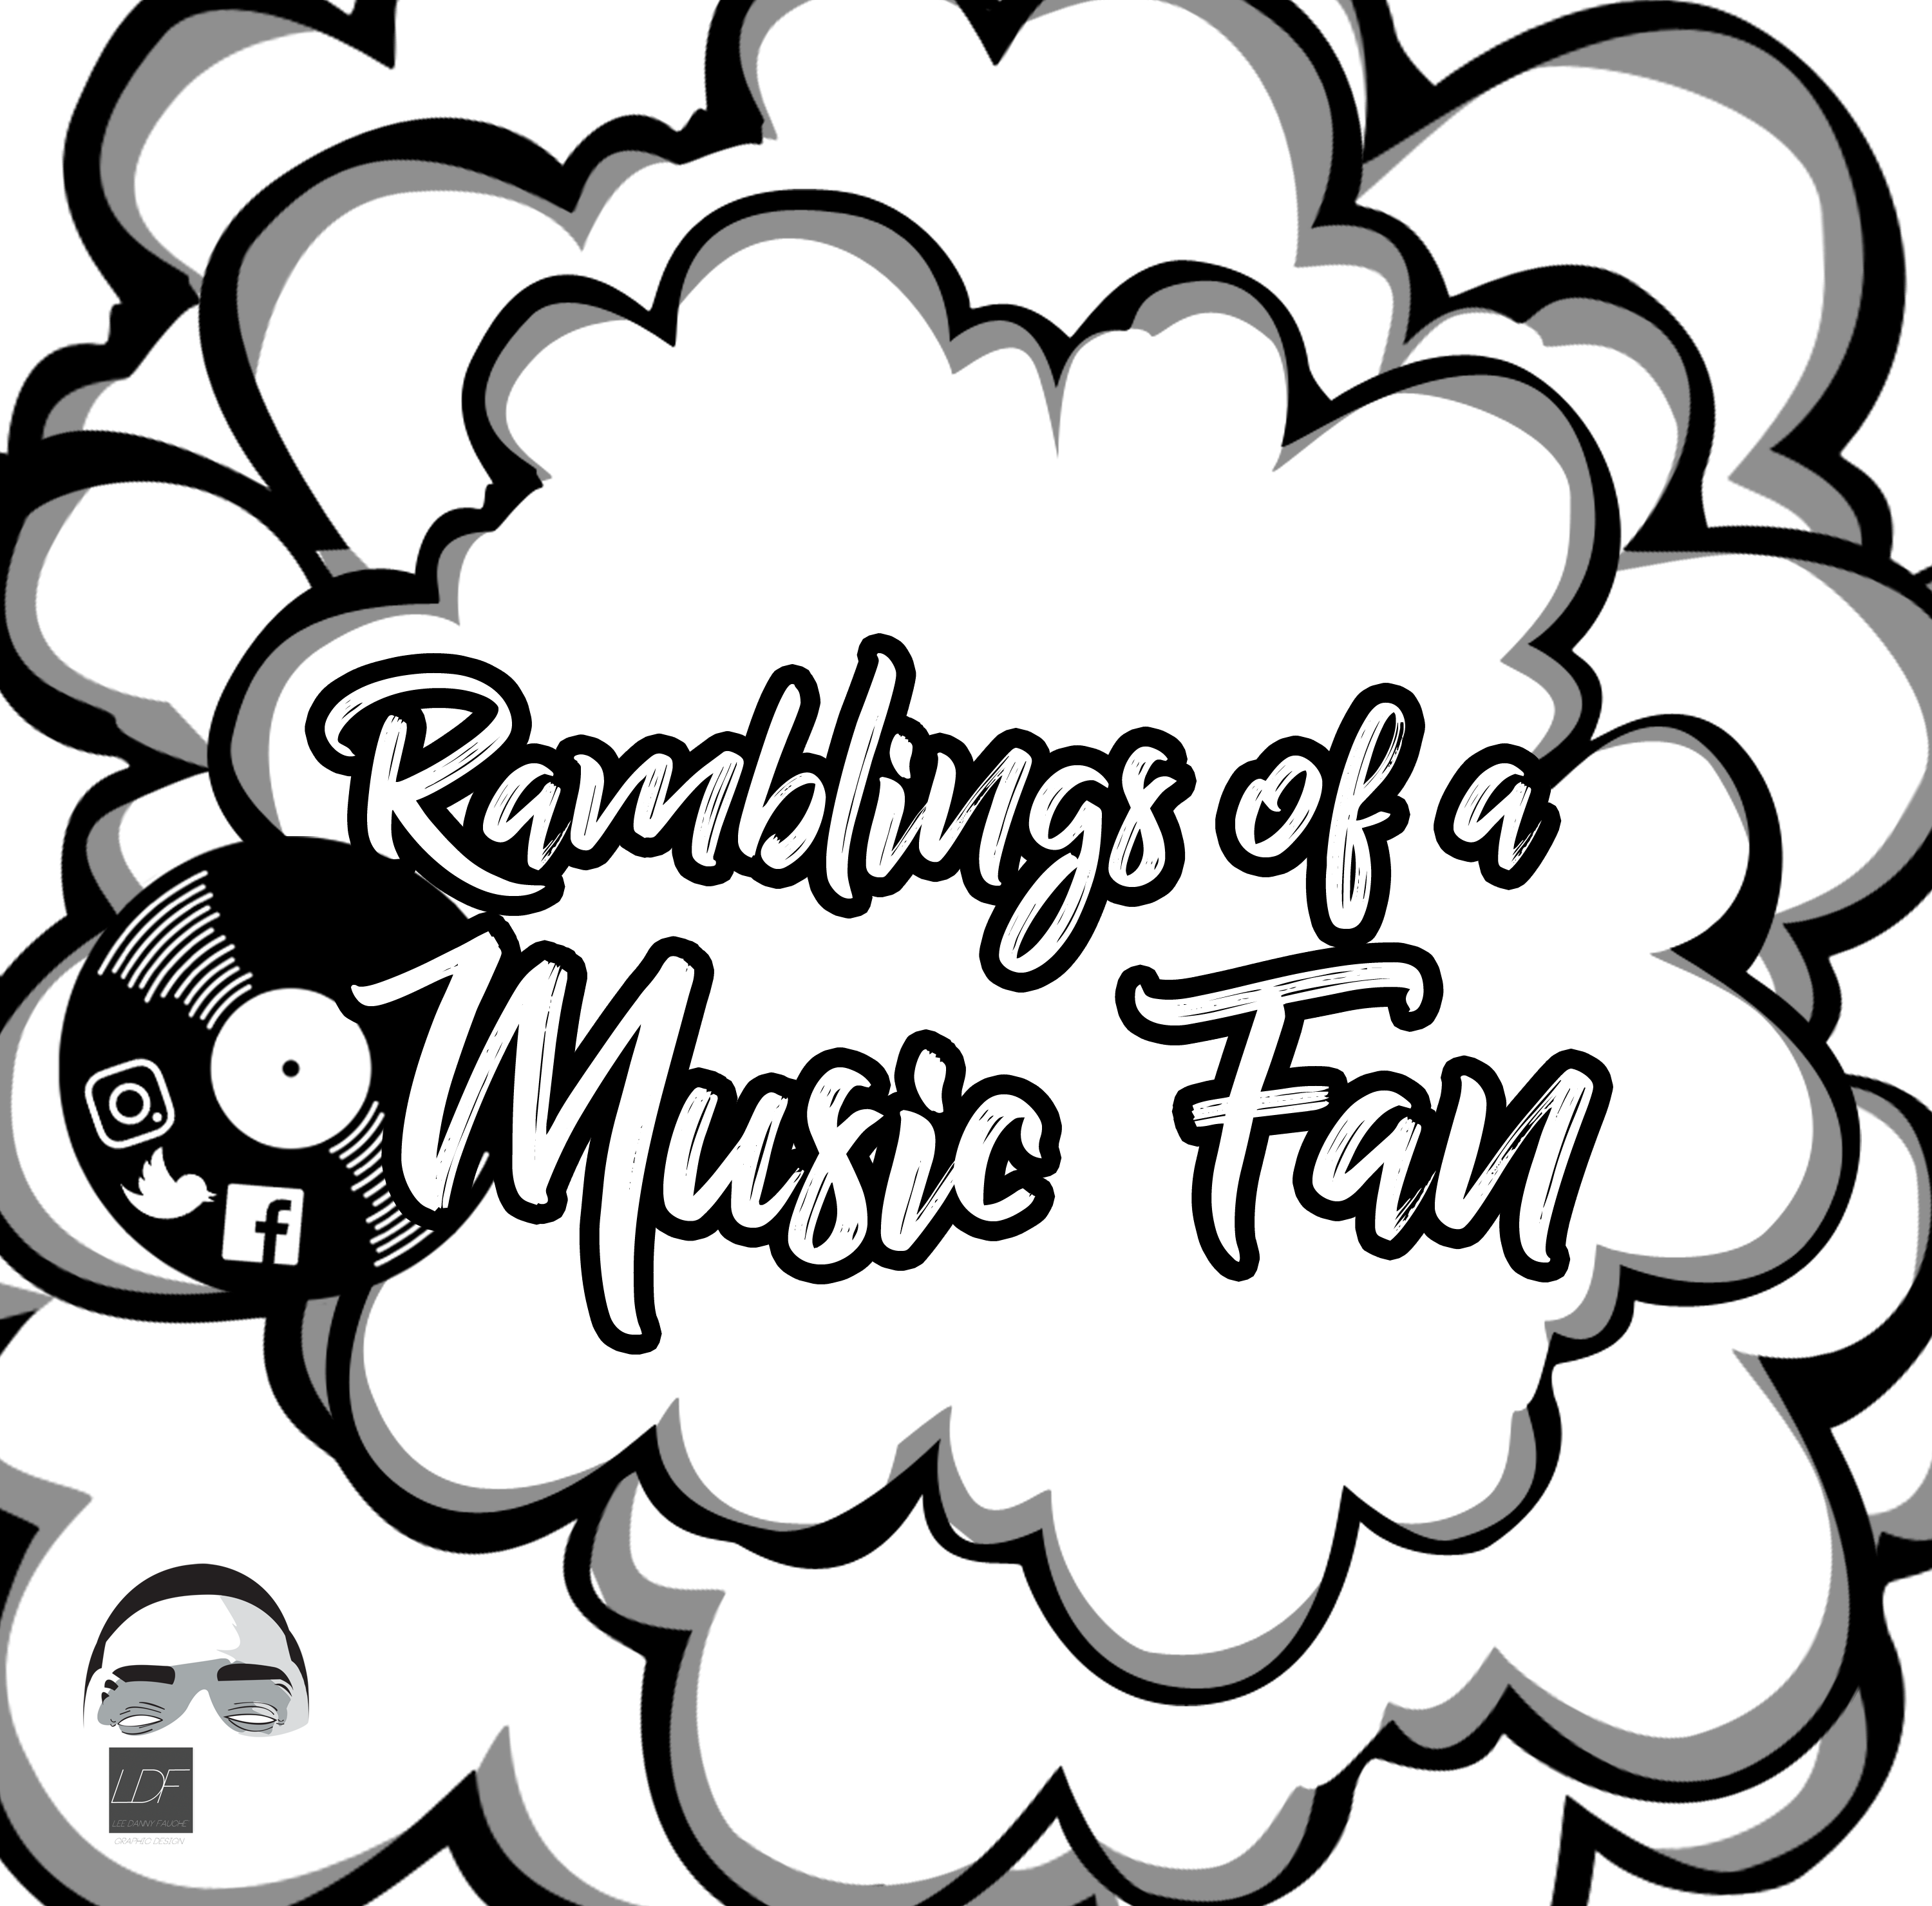 Ramblings of a music fan